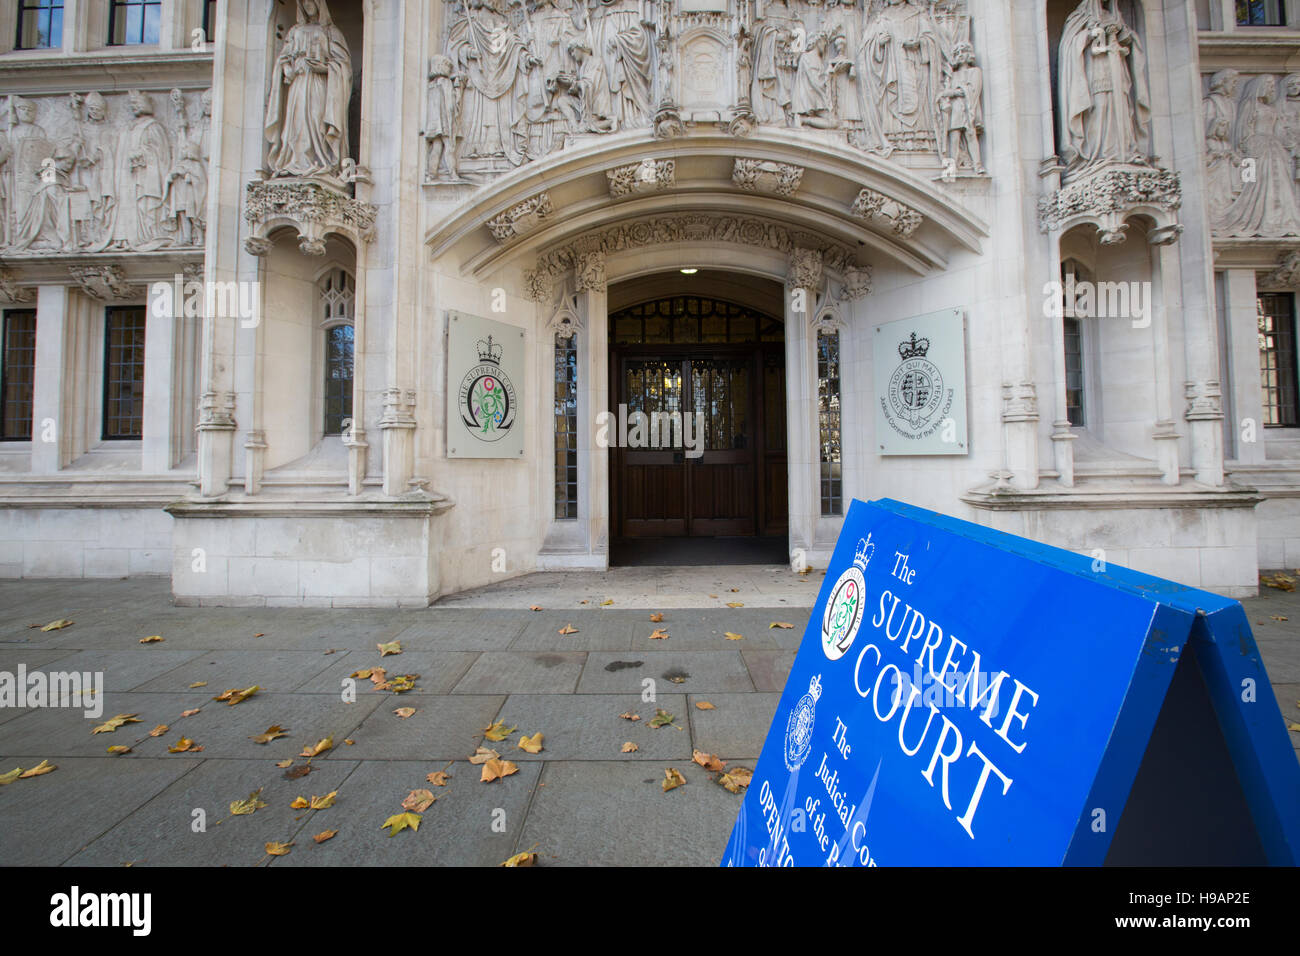 The Supreme Court, where the UK Government's Brexit appeal is taking place against Anti-Brexit campaigners, - Stock Image